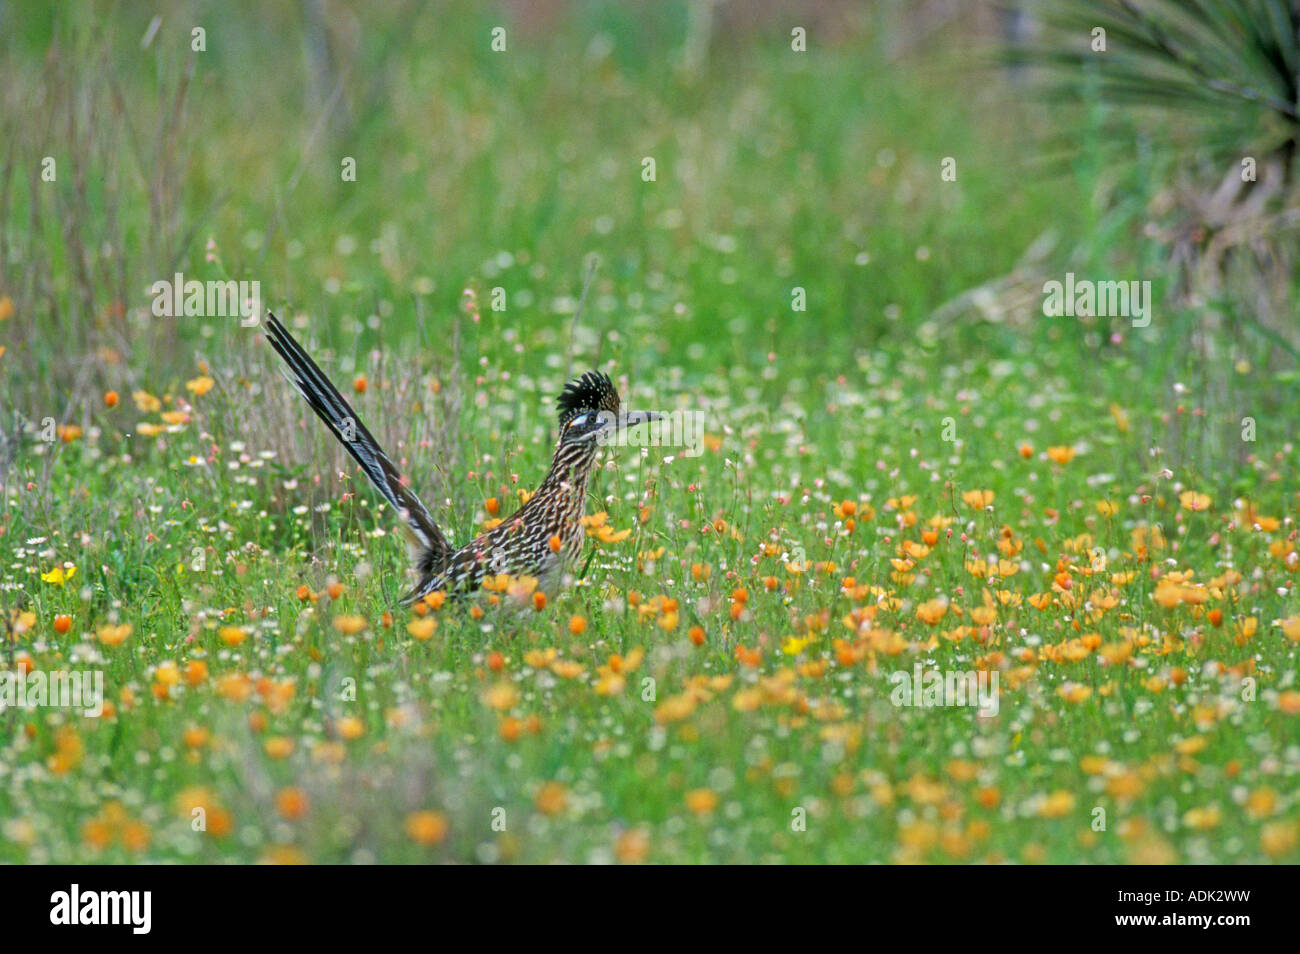 Greater Roadrunner Geococcyx californianus adult in wildflowers Golden Flax Choke Canyon State Park Texas USA April - Stock Image